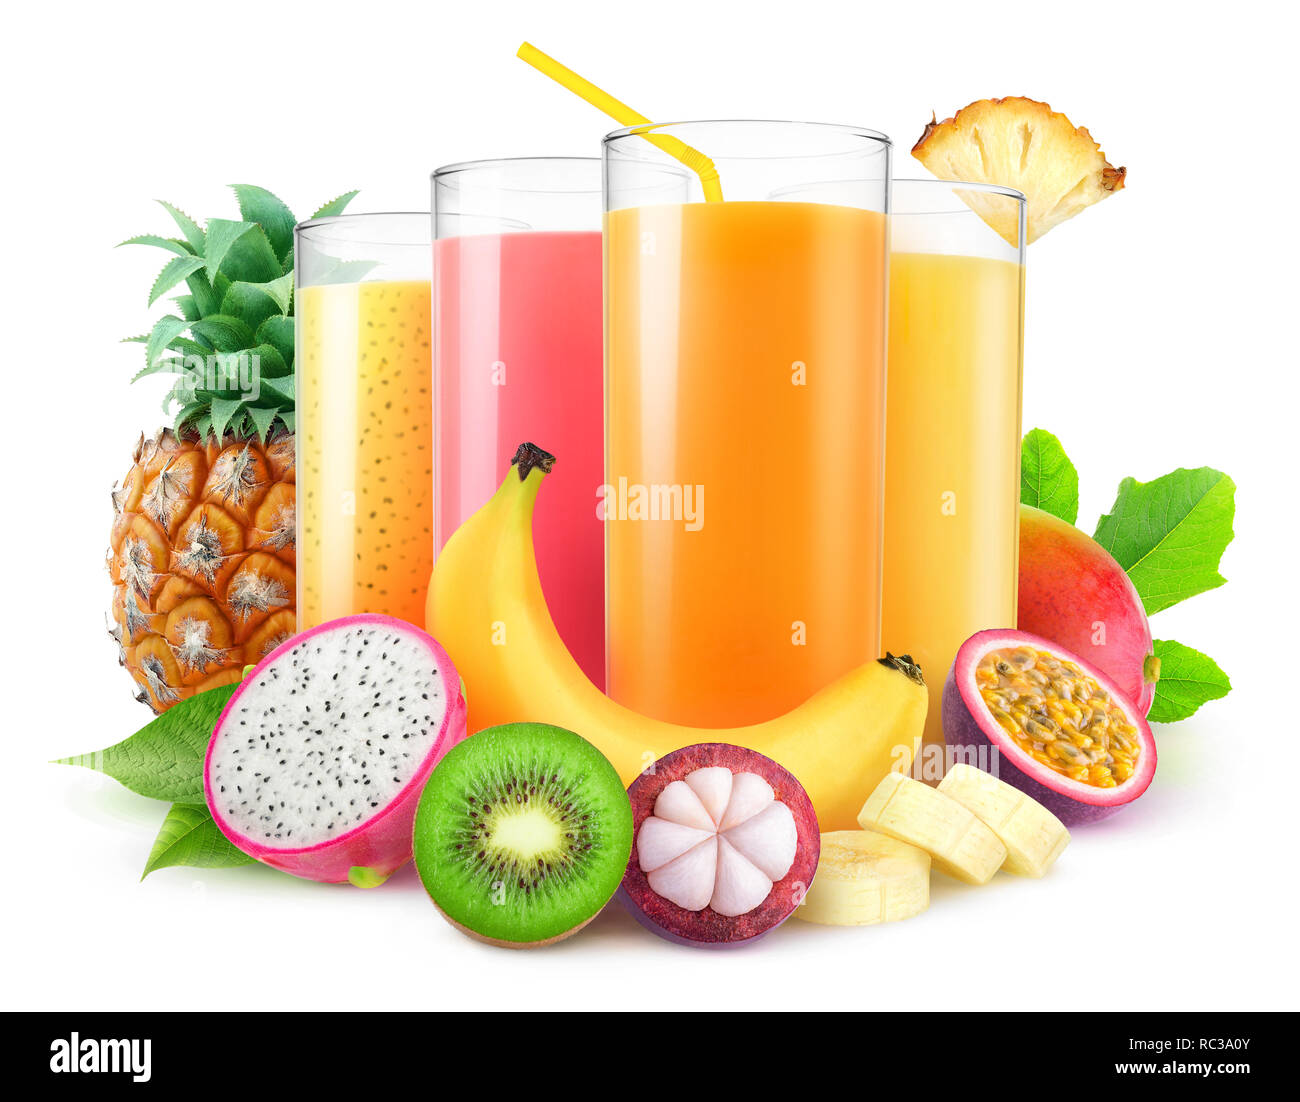 Isolated Juices Glasses Of Fresh Juice And Pile Of Tropical Fruits Isolated On White Background With Clipping Path Stock Photo Alamy